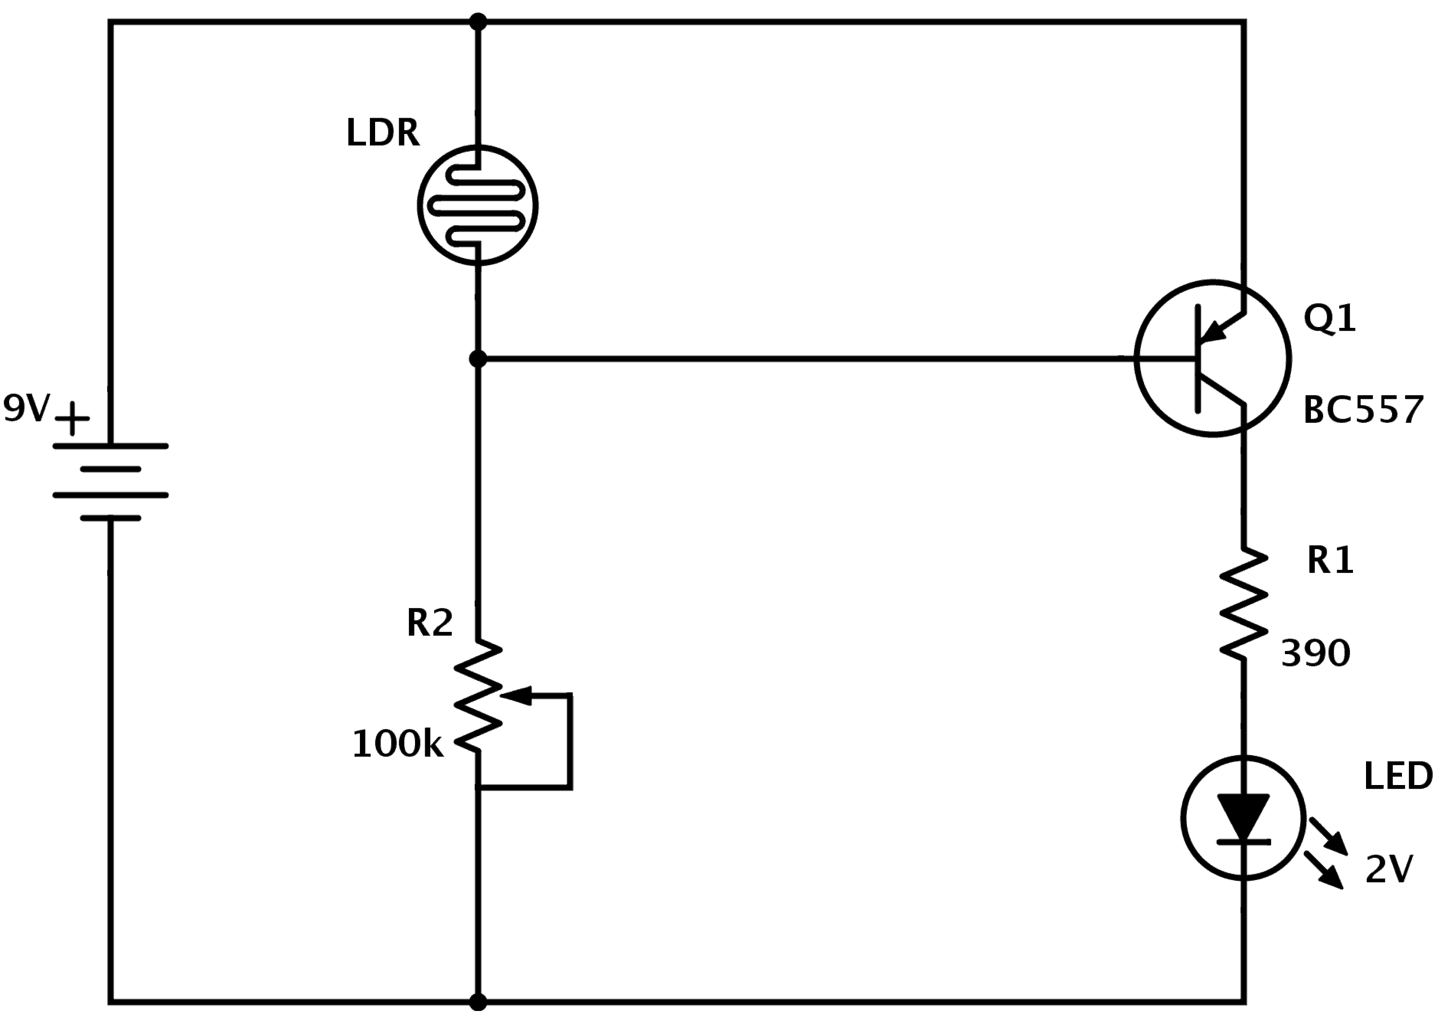 Ldr Circuit Diagram Build Electronic Circuits Led Wiring Basics With Pnp Transistor Dark Detector